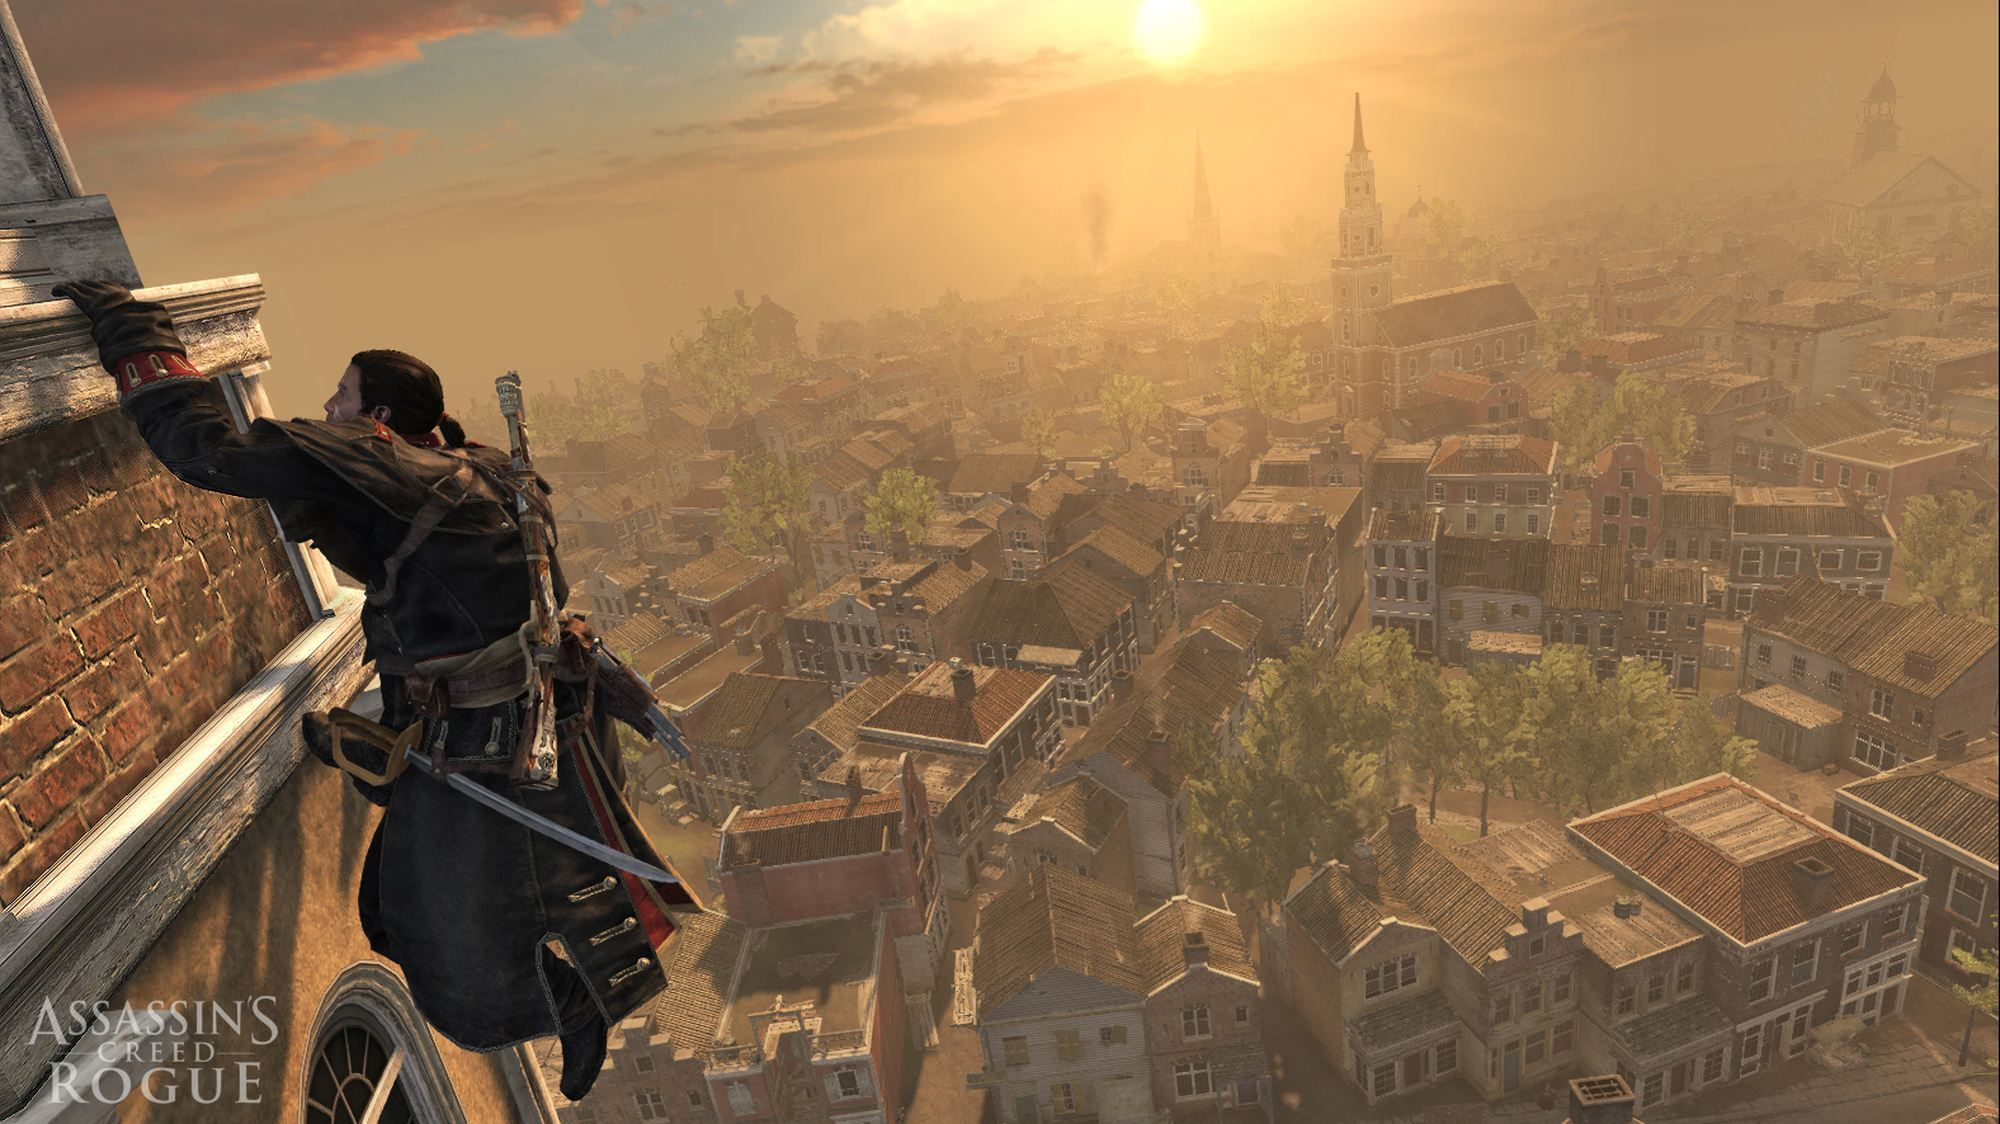 Assassin's Creed Rogue (PC) - 15